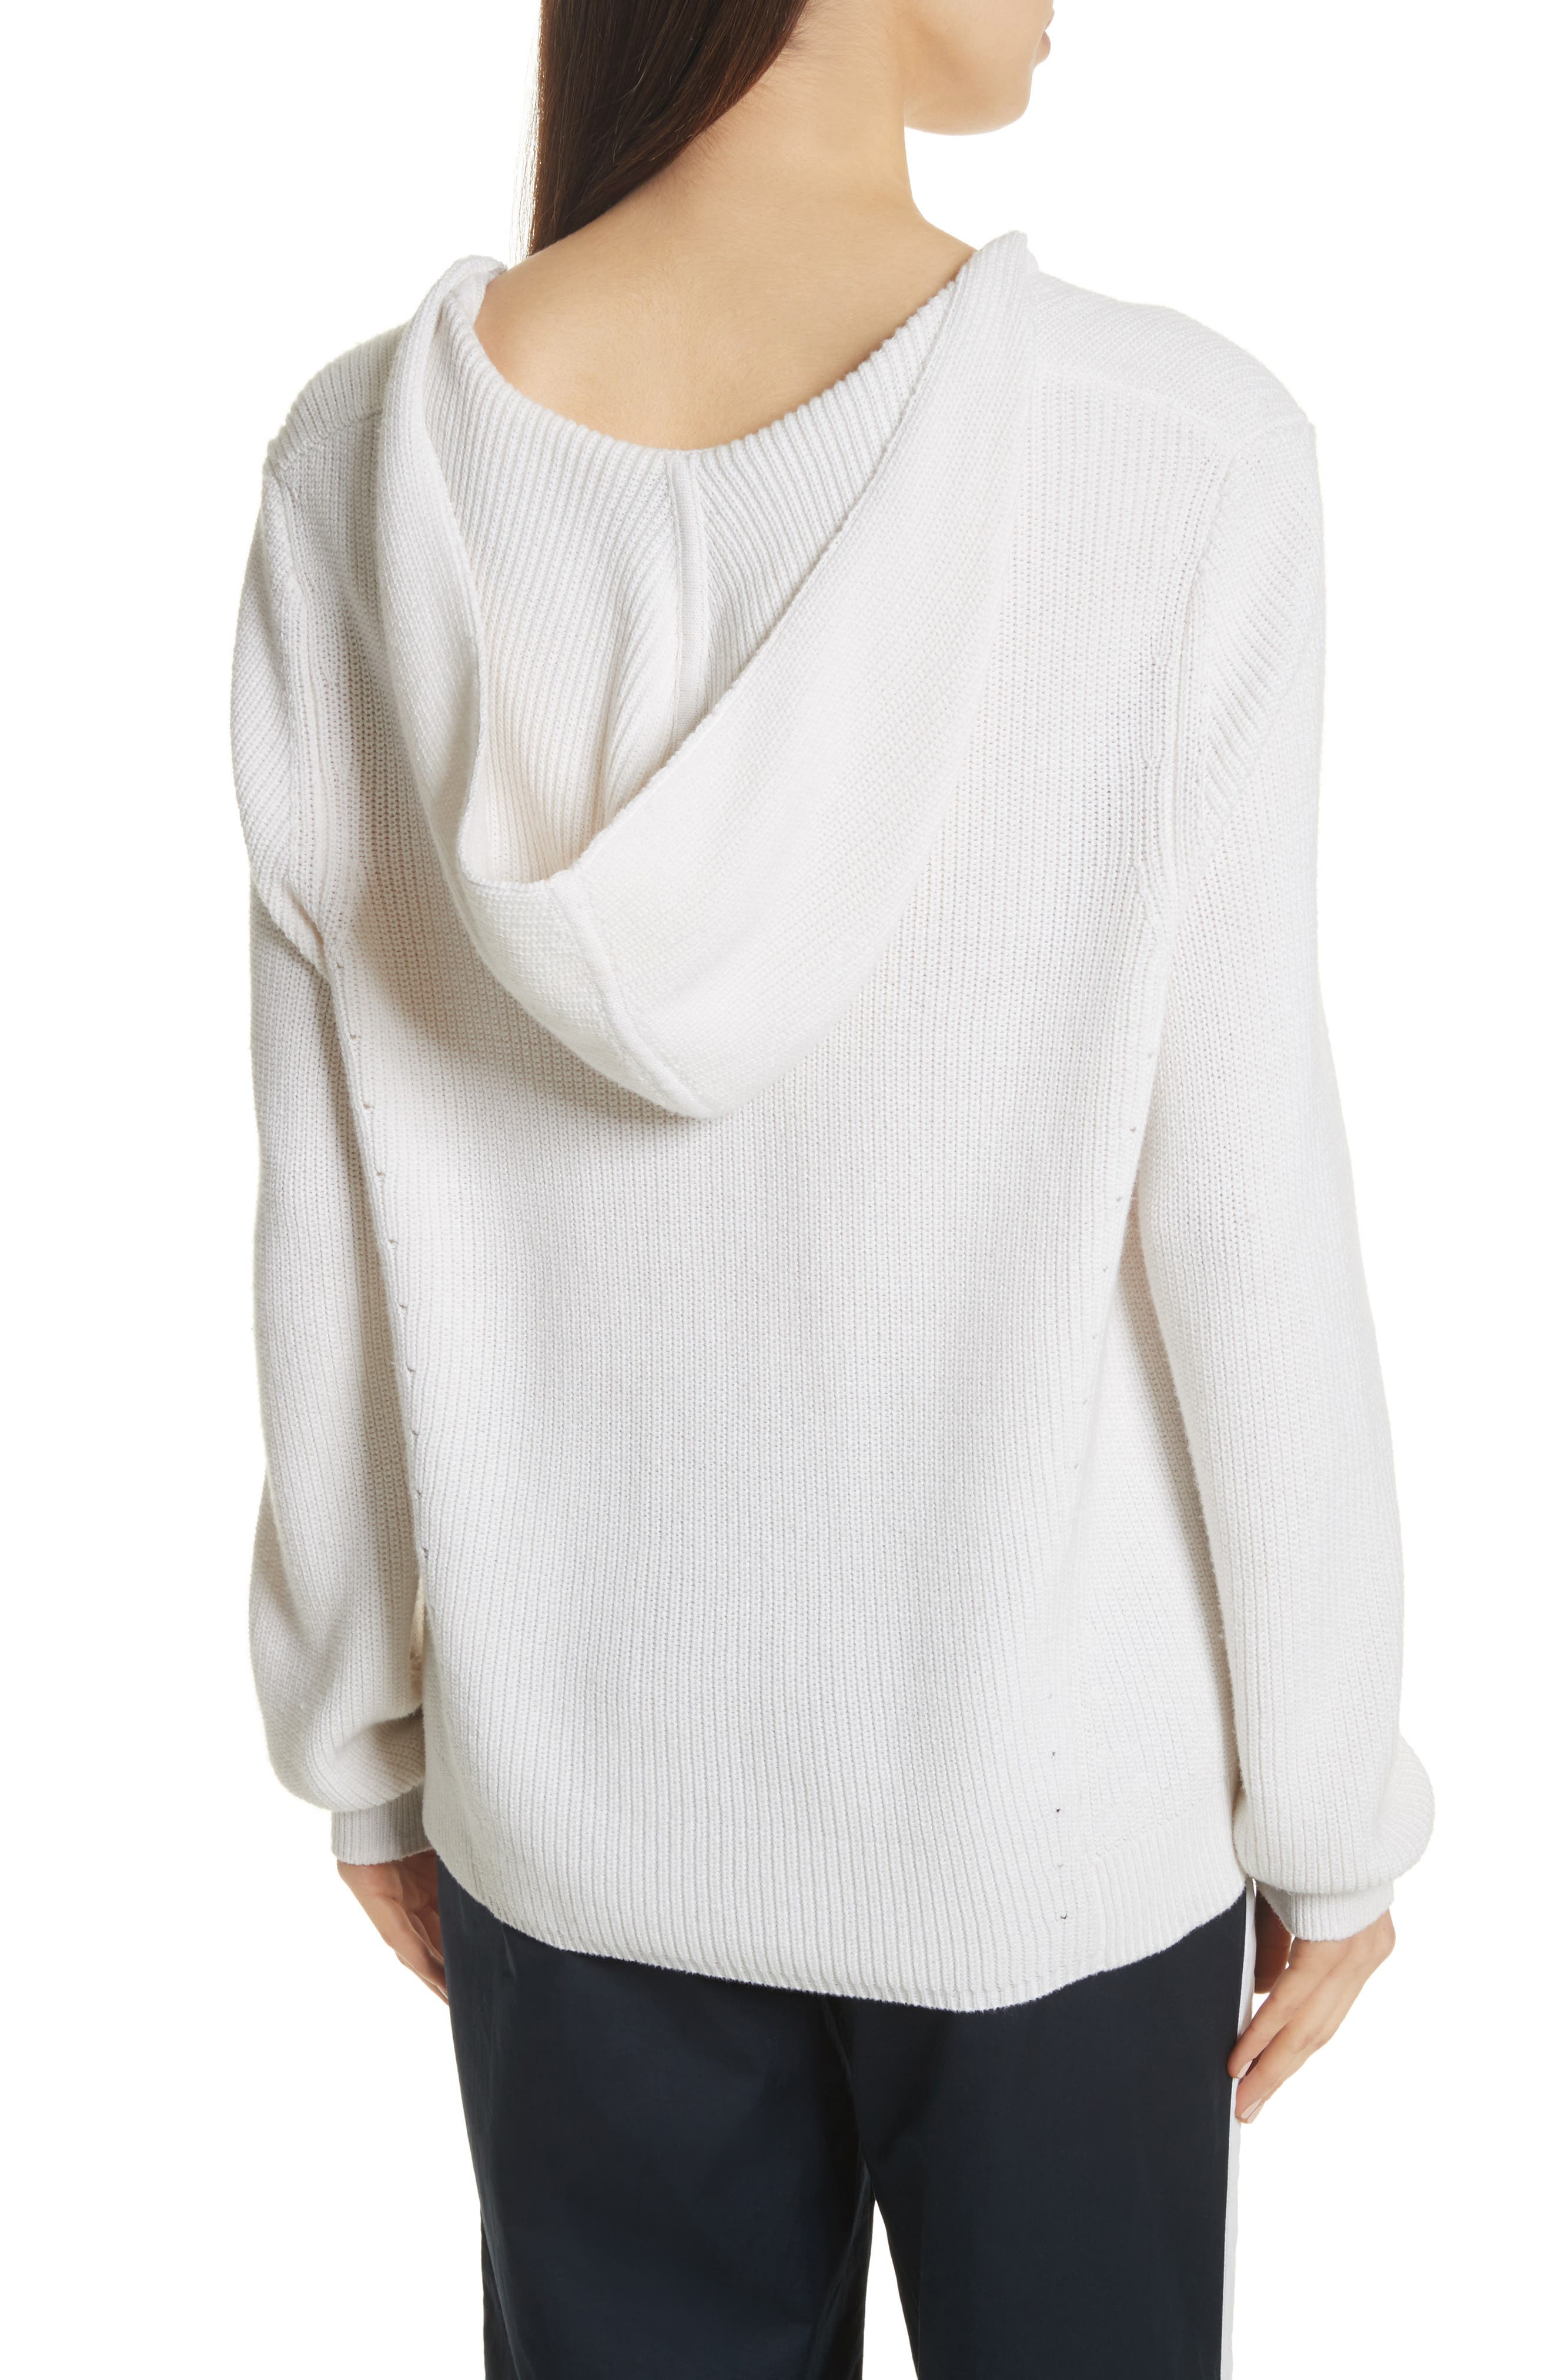 Octavia Hooded Sweater,                             Alternate thumbnail 2, color,                             Ivory